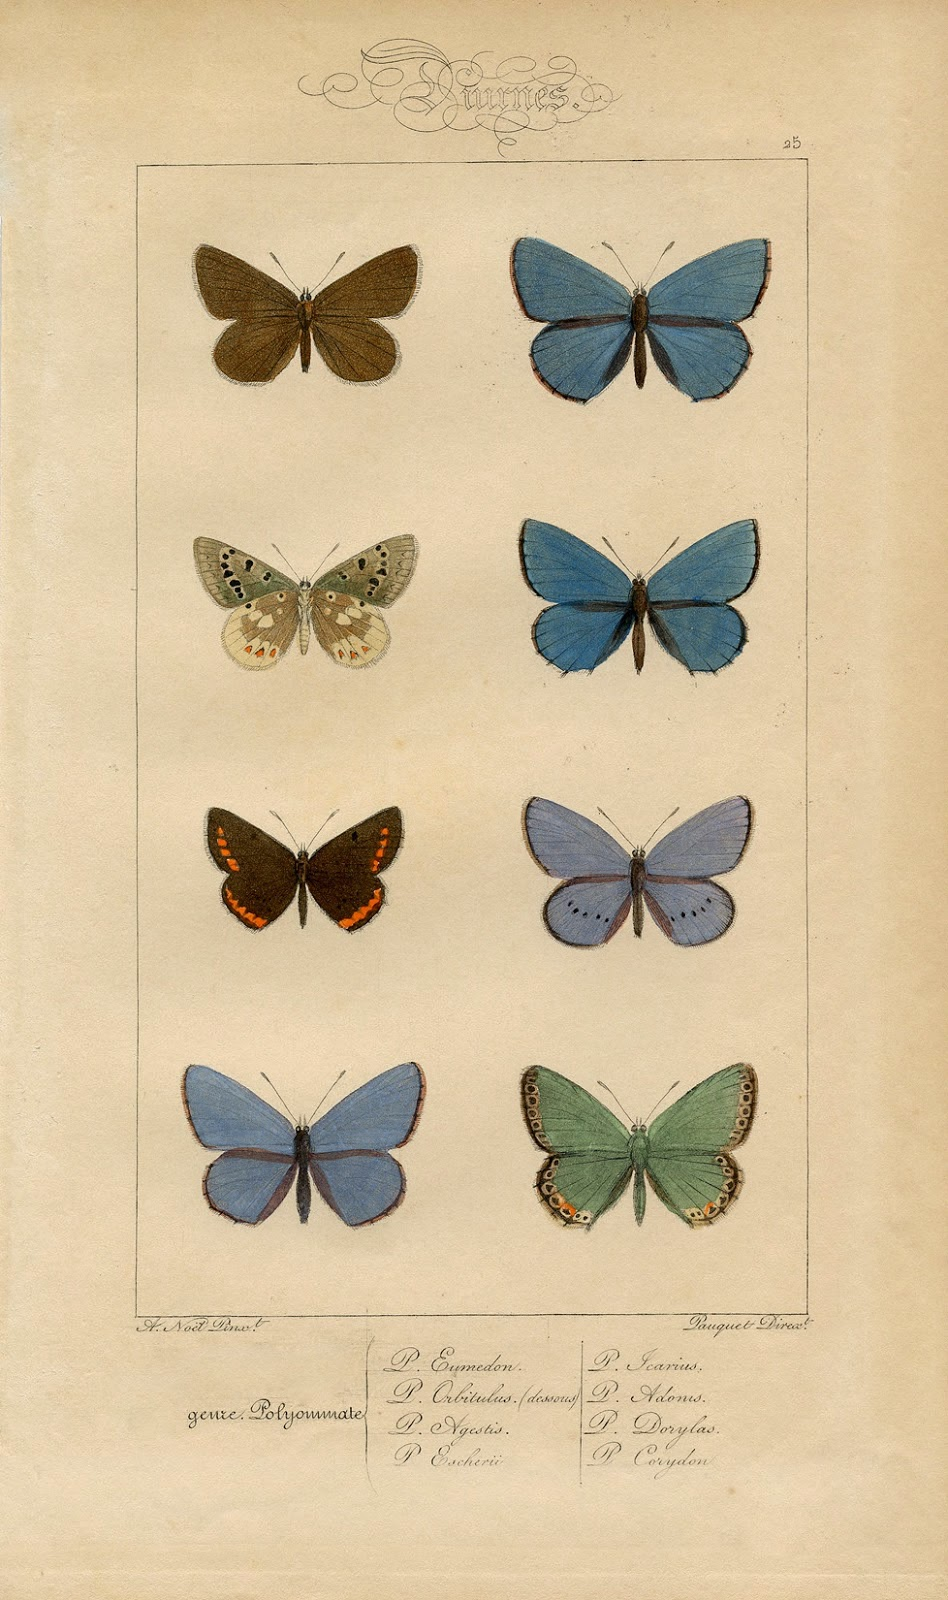 Polyommatus sketches